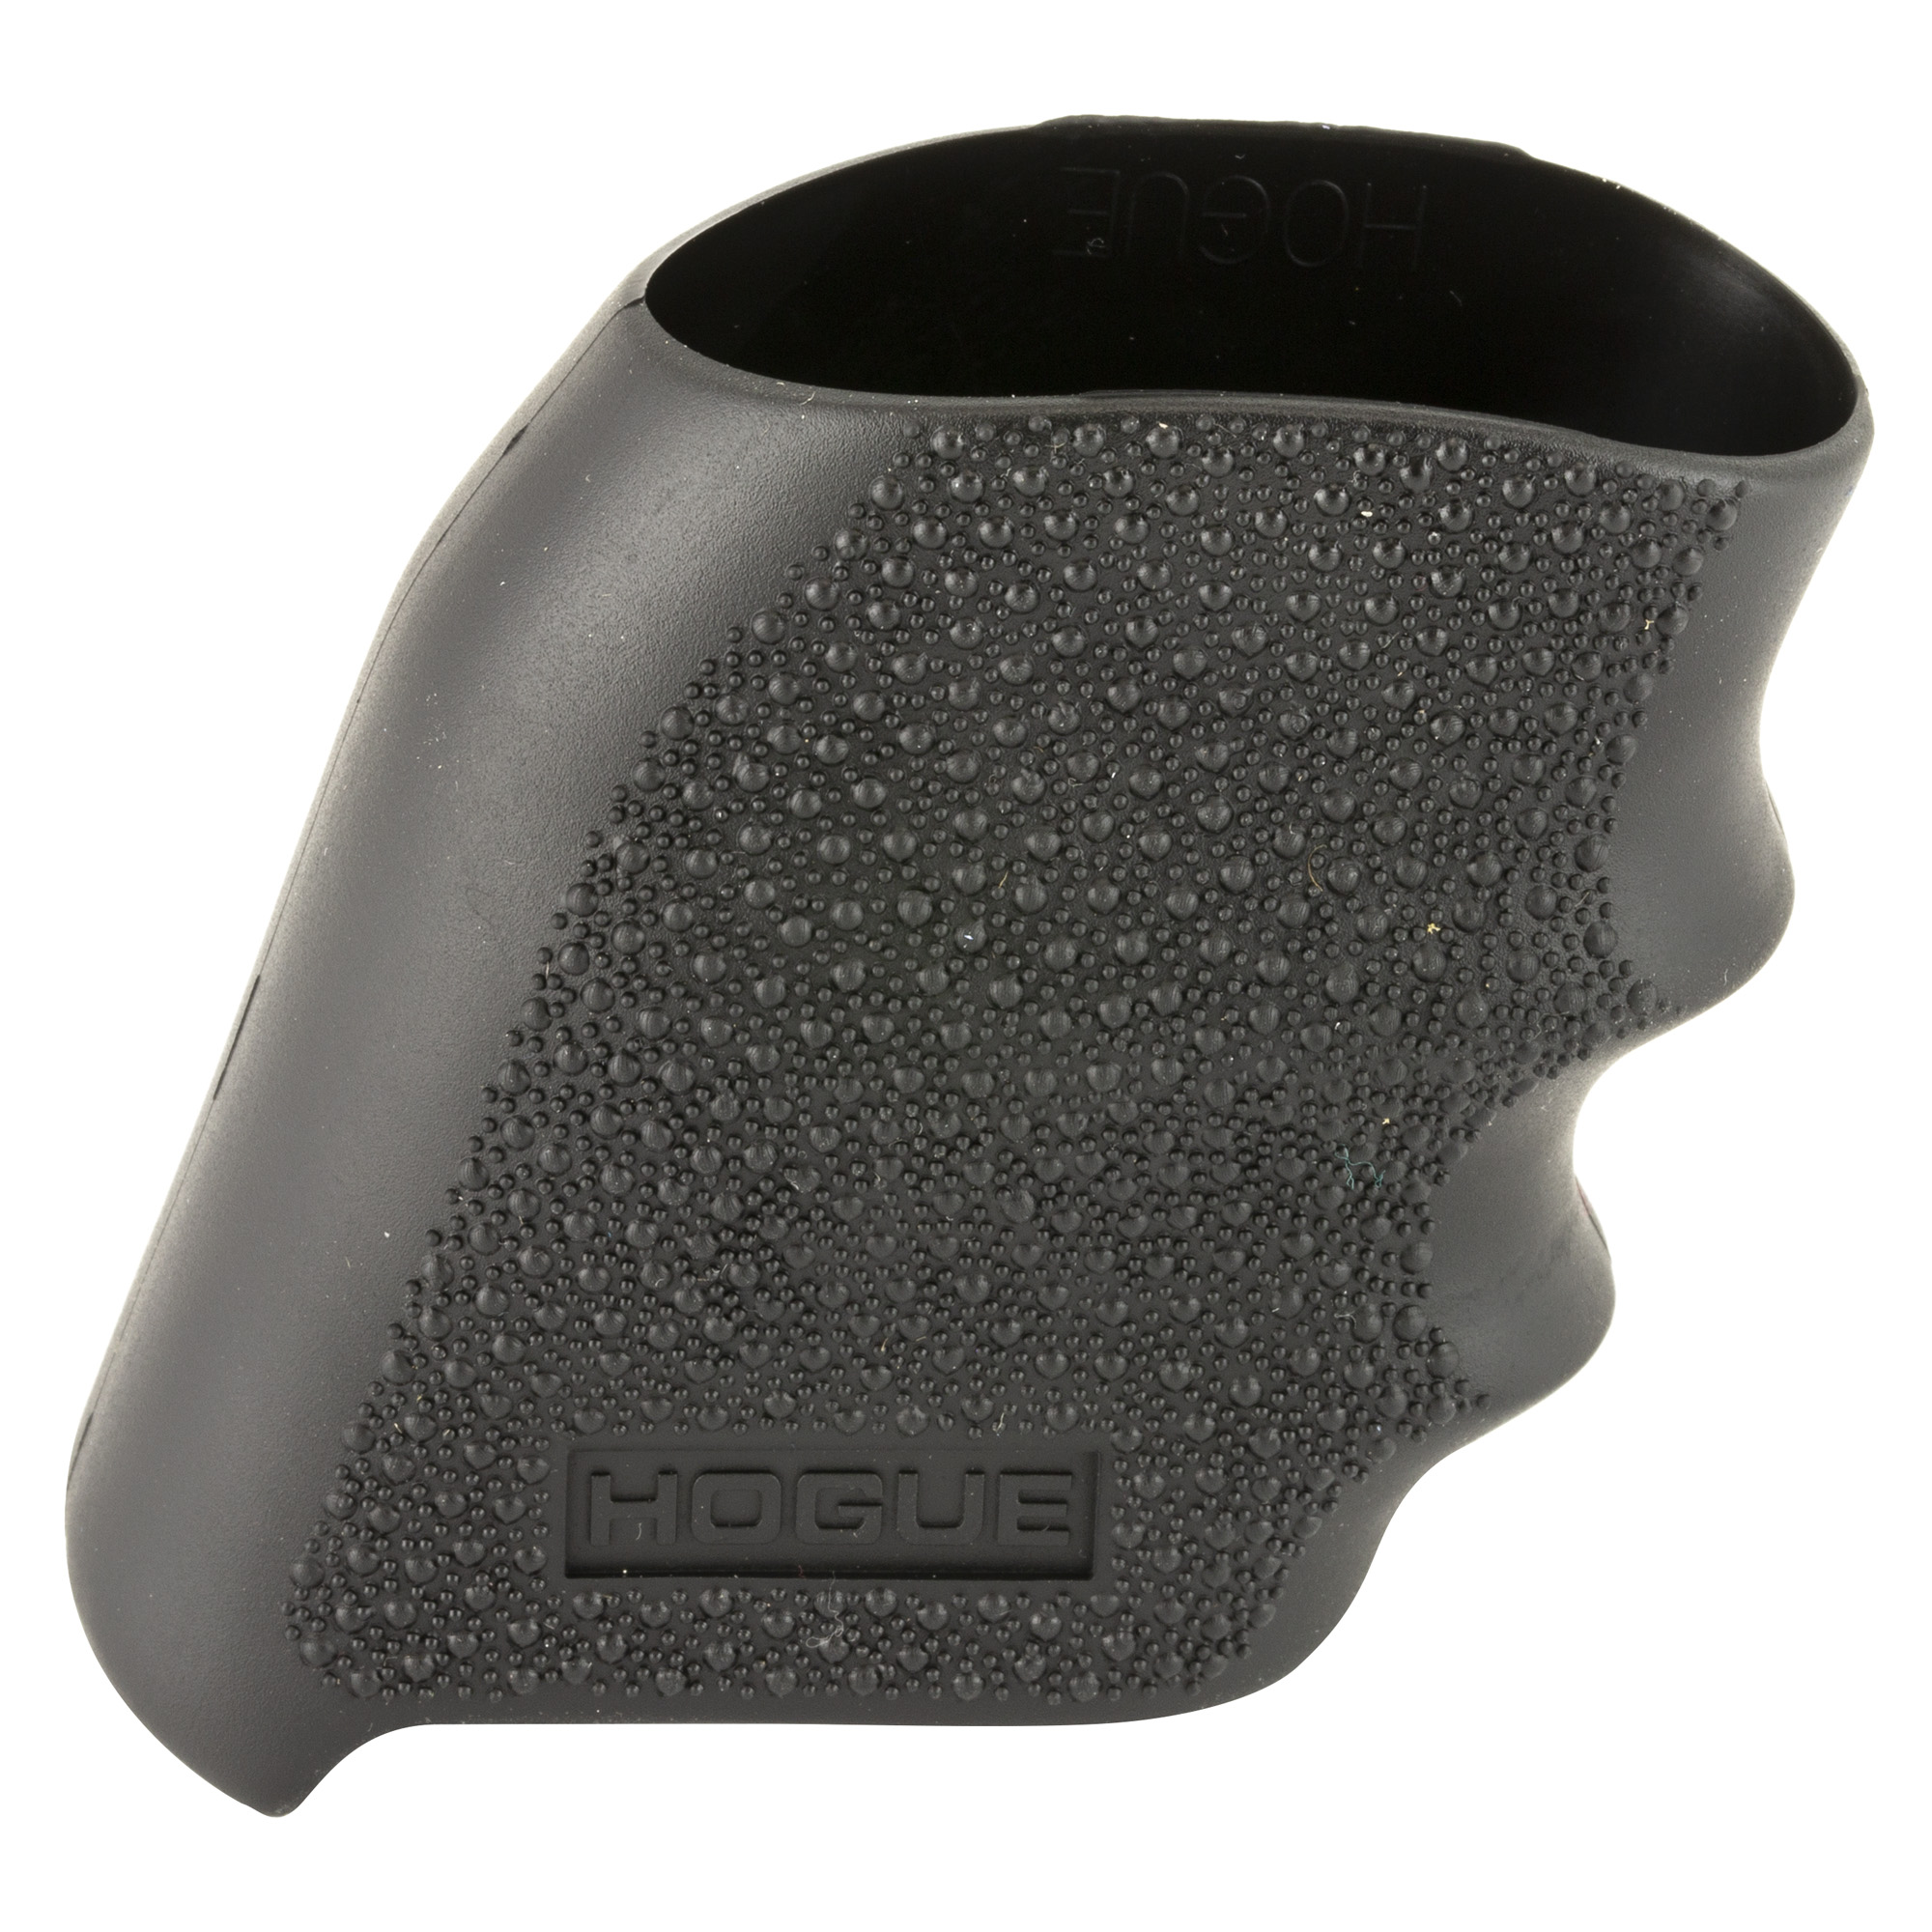 "Hogue's Handall Hybrid Grip Sleeve with Finger Grooves is molded from a durable synthetic rubber that is not spongy or tacky"" but gives that soft recoil absorbing feel"" without affecting accuracy. This modern rubber requires a completely different molding process than ordinary neoprene and results in a much superior grip. The material they use does not come apart or deteriorate and is resistant to all solvents and oils used around firearms. Hogue Grips give you a lasting precision fit and durability that will provide years of dependable service. The flexibility of their materials and molding process has allowed them to produce superior rubber grips with features that out perform all other makes."